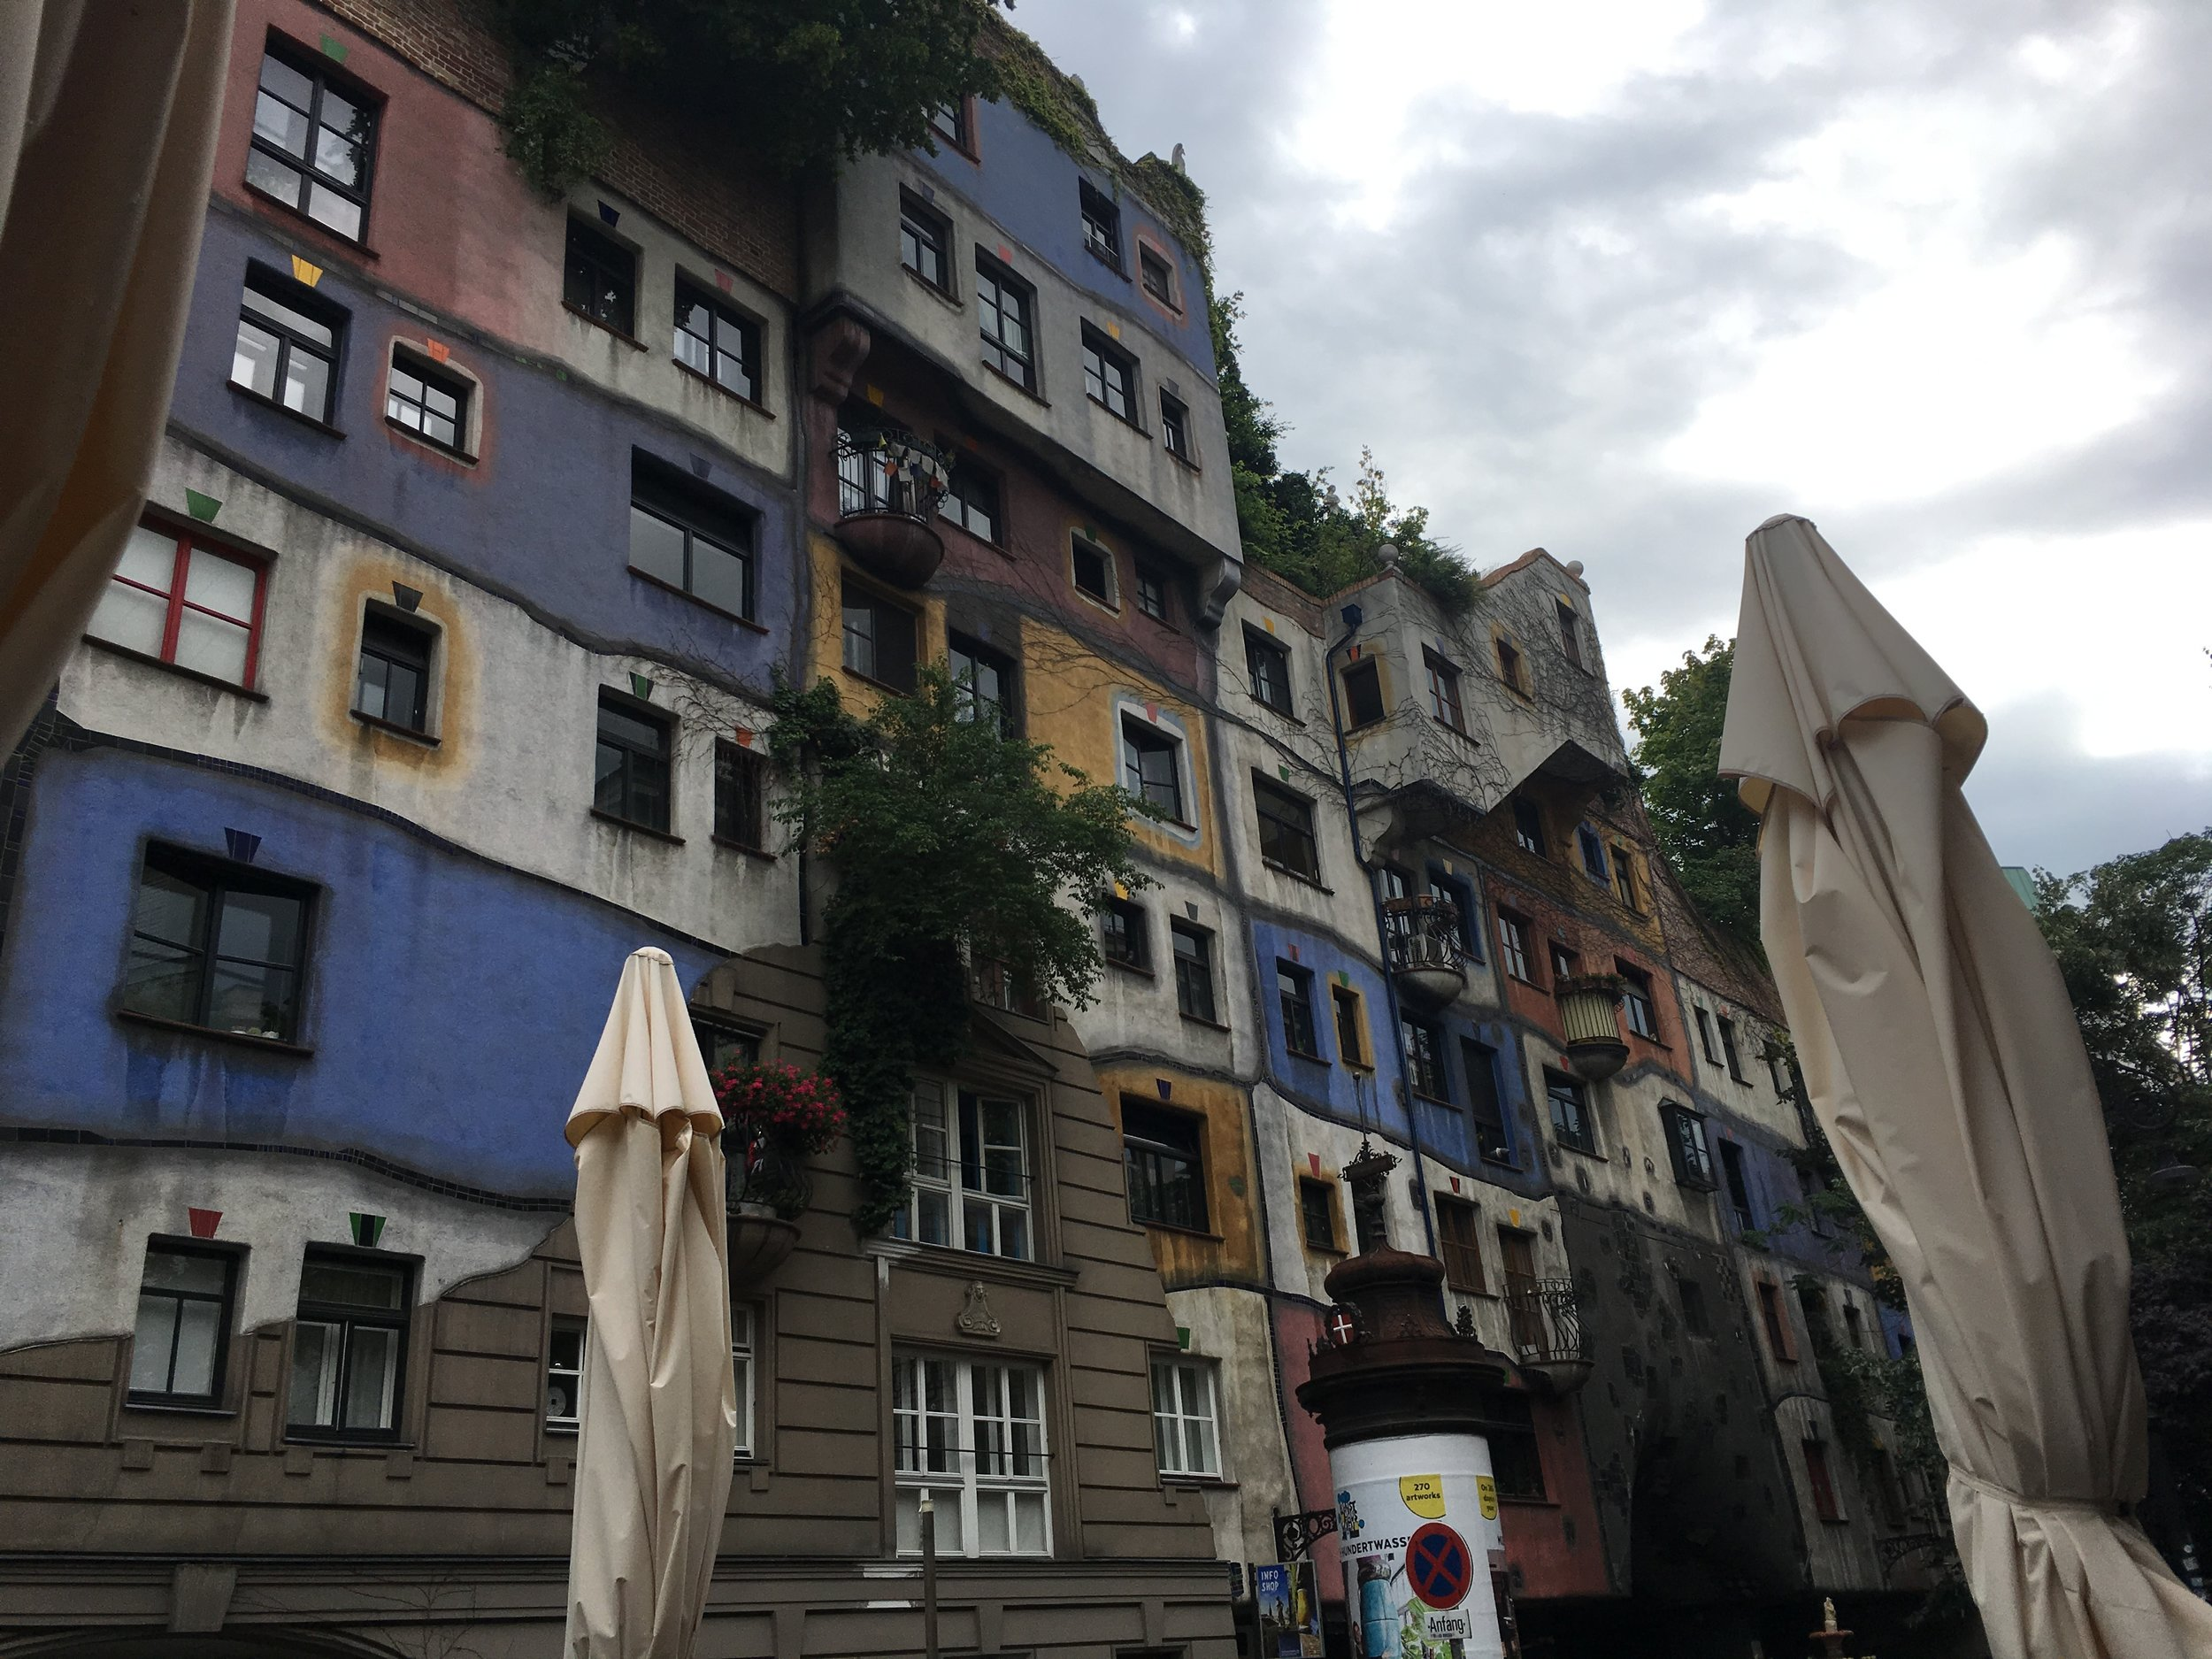 Vienna has some interesting architecture. The whole city is an experience.